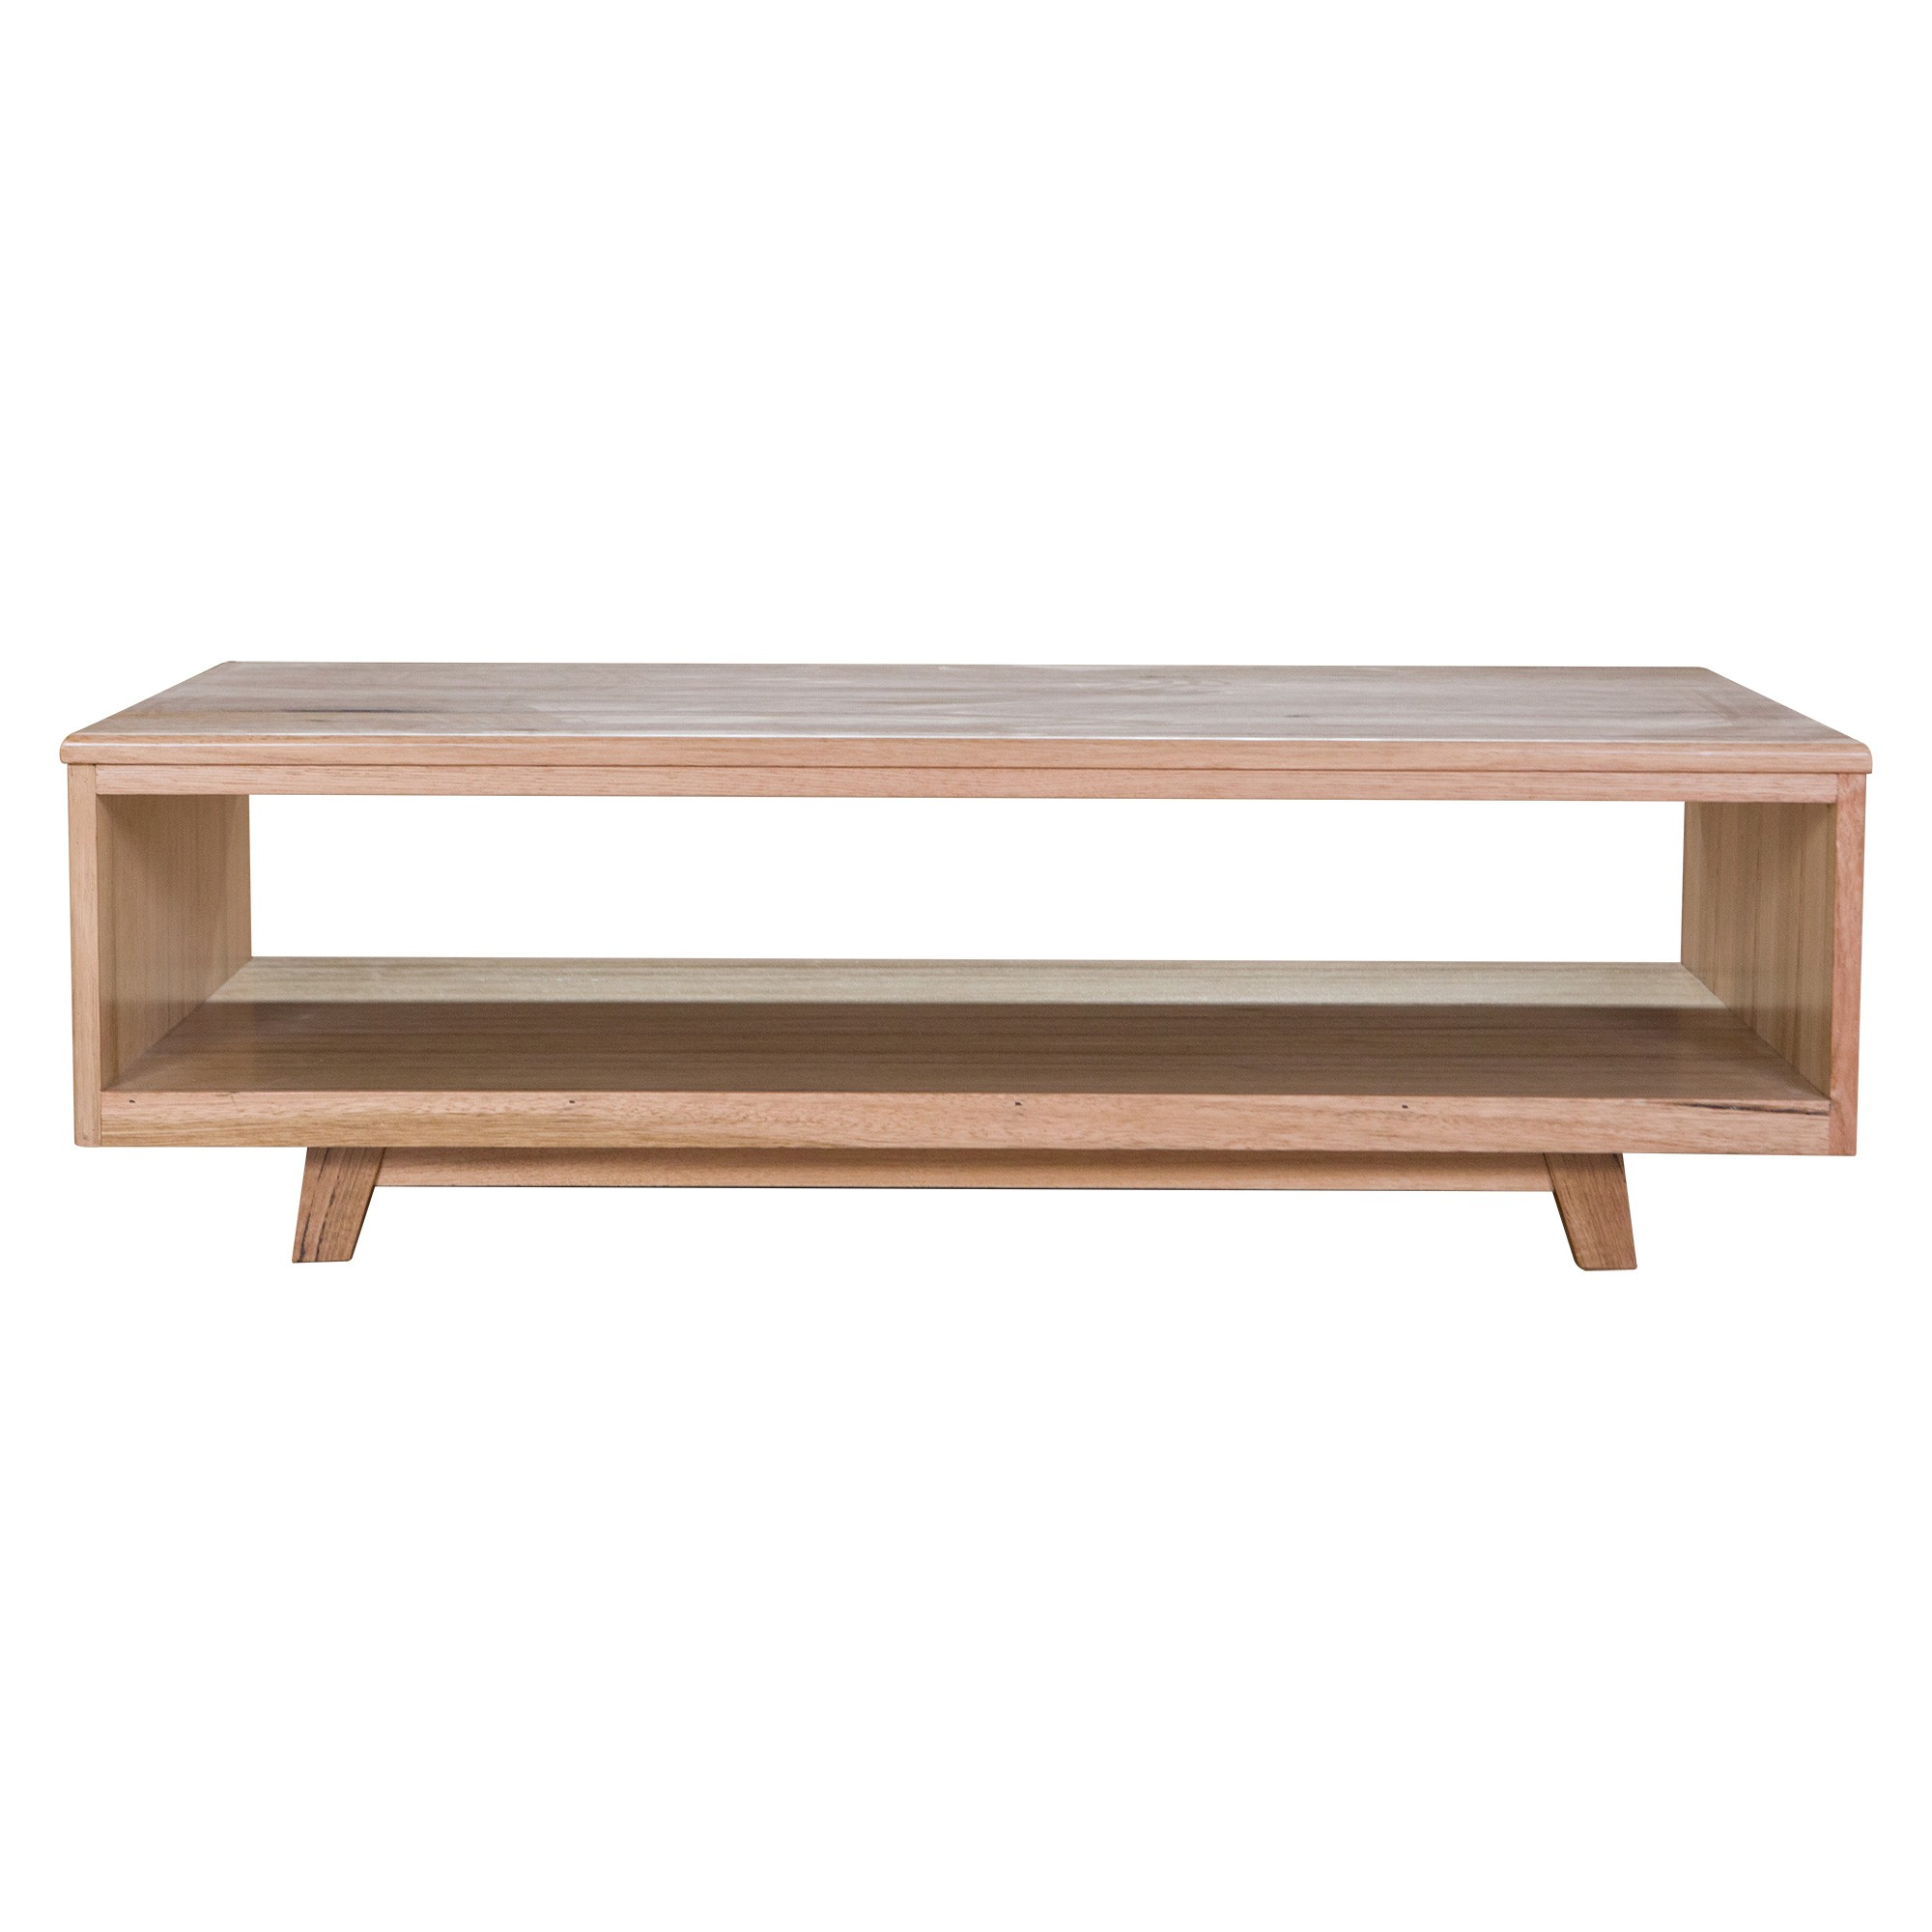 Wade Tasmanian Oak Timber Coffee Table, 130cm